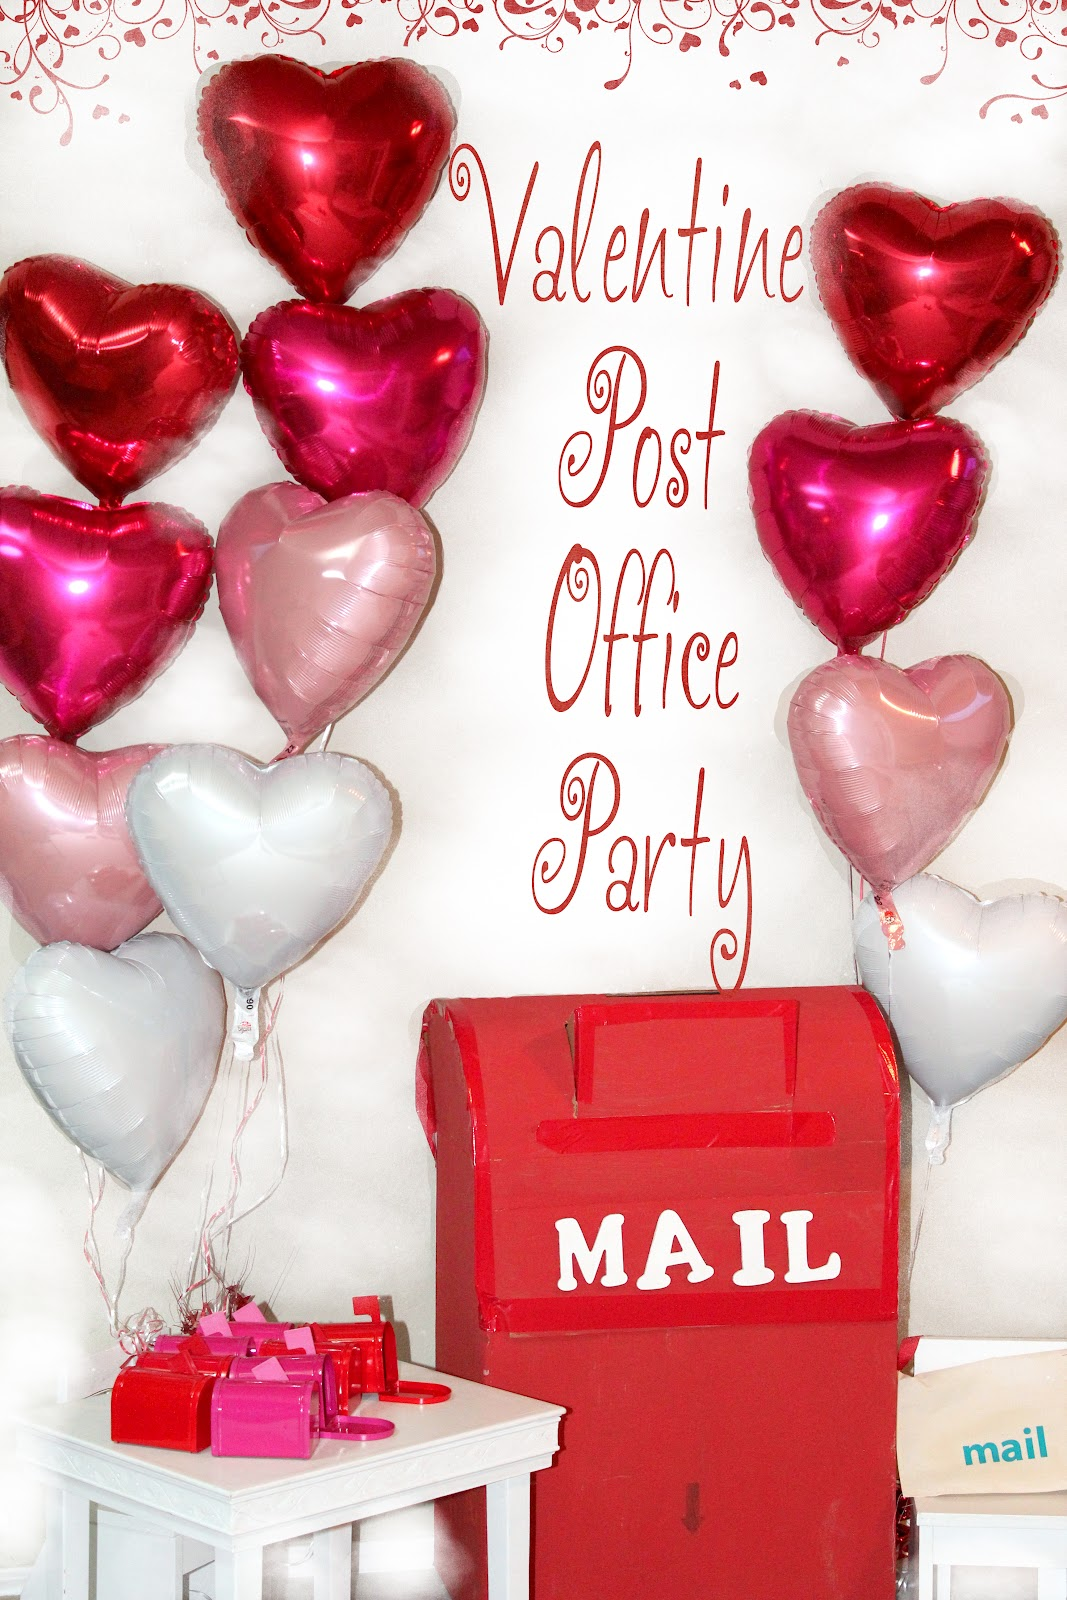 Office Valentine Ideas On Valentine Post Office Party Theadmagco